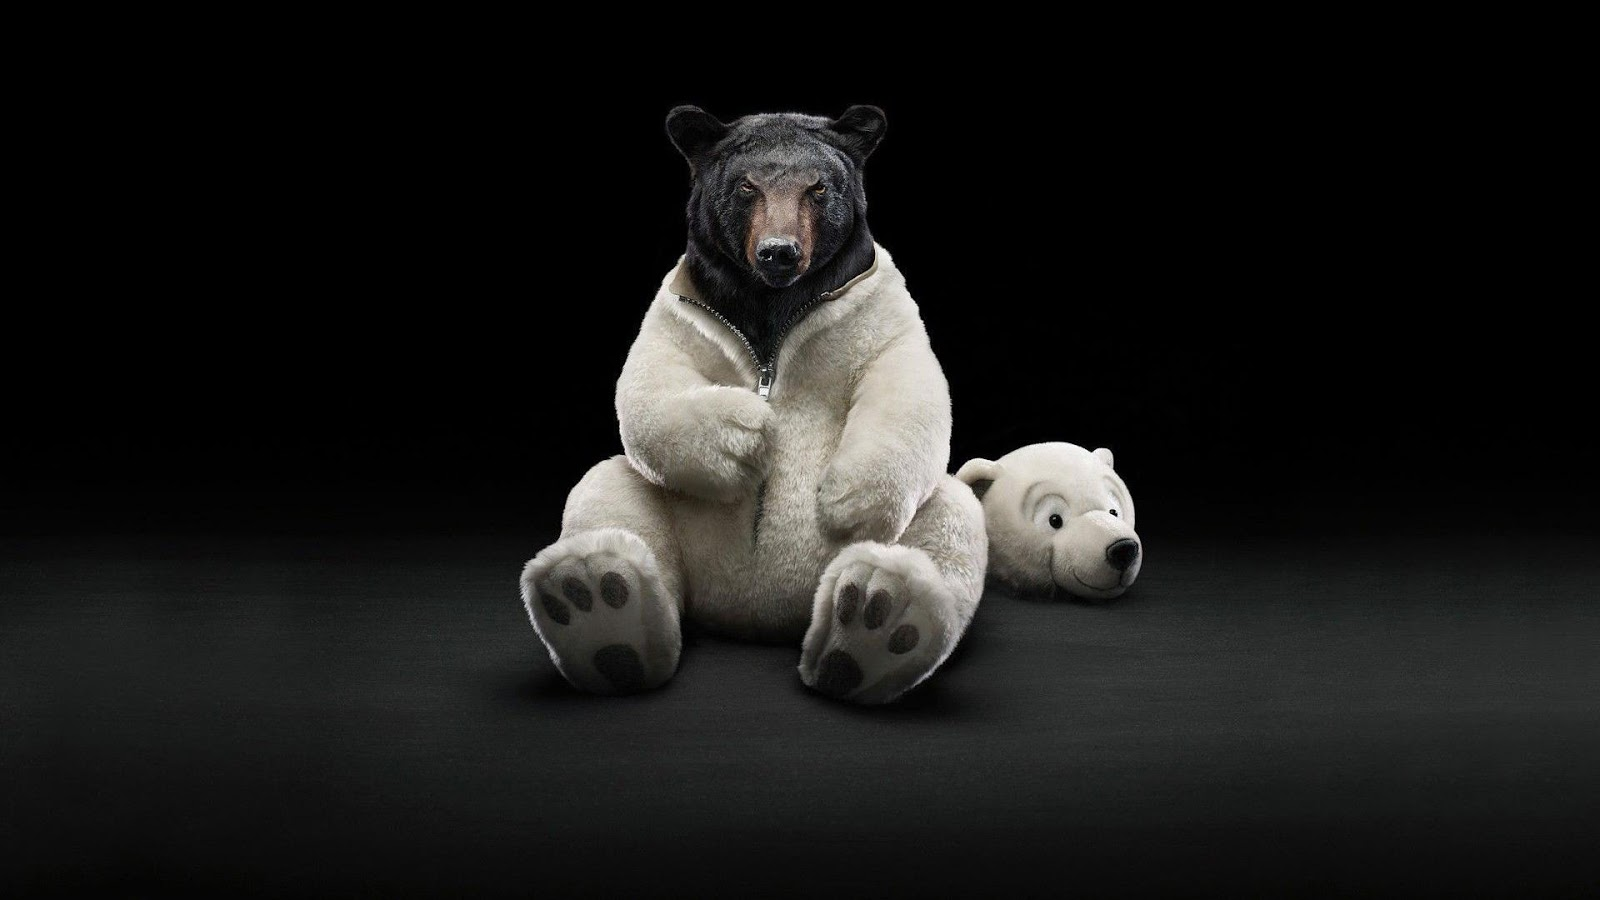 Funny bear Wallpapers dark theme